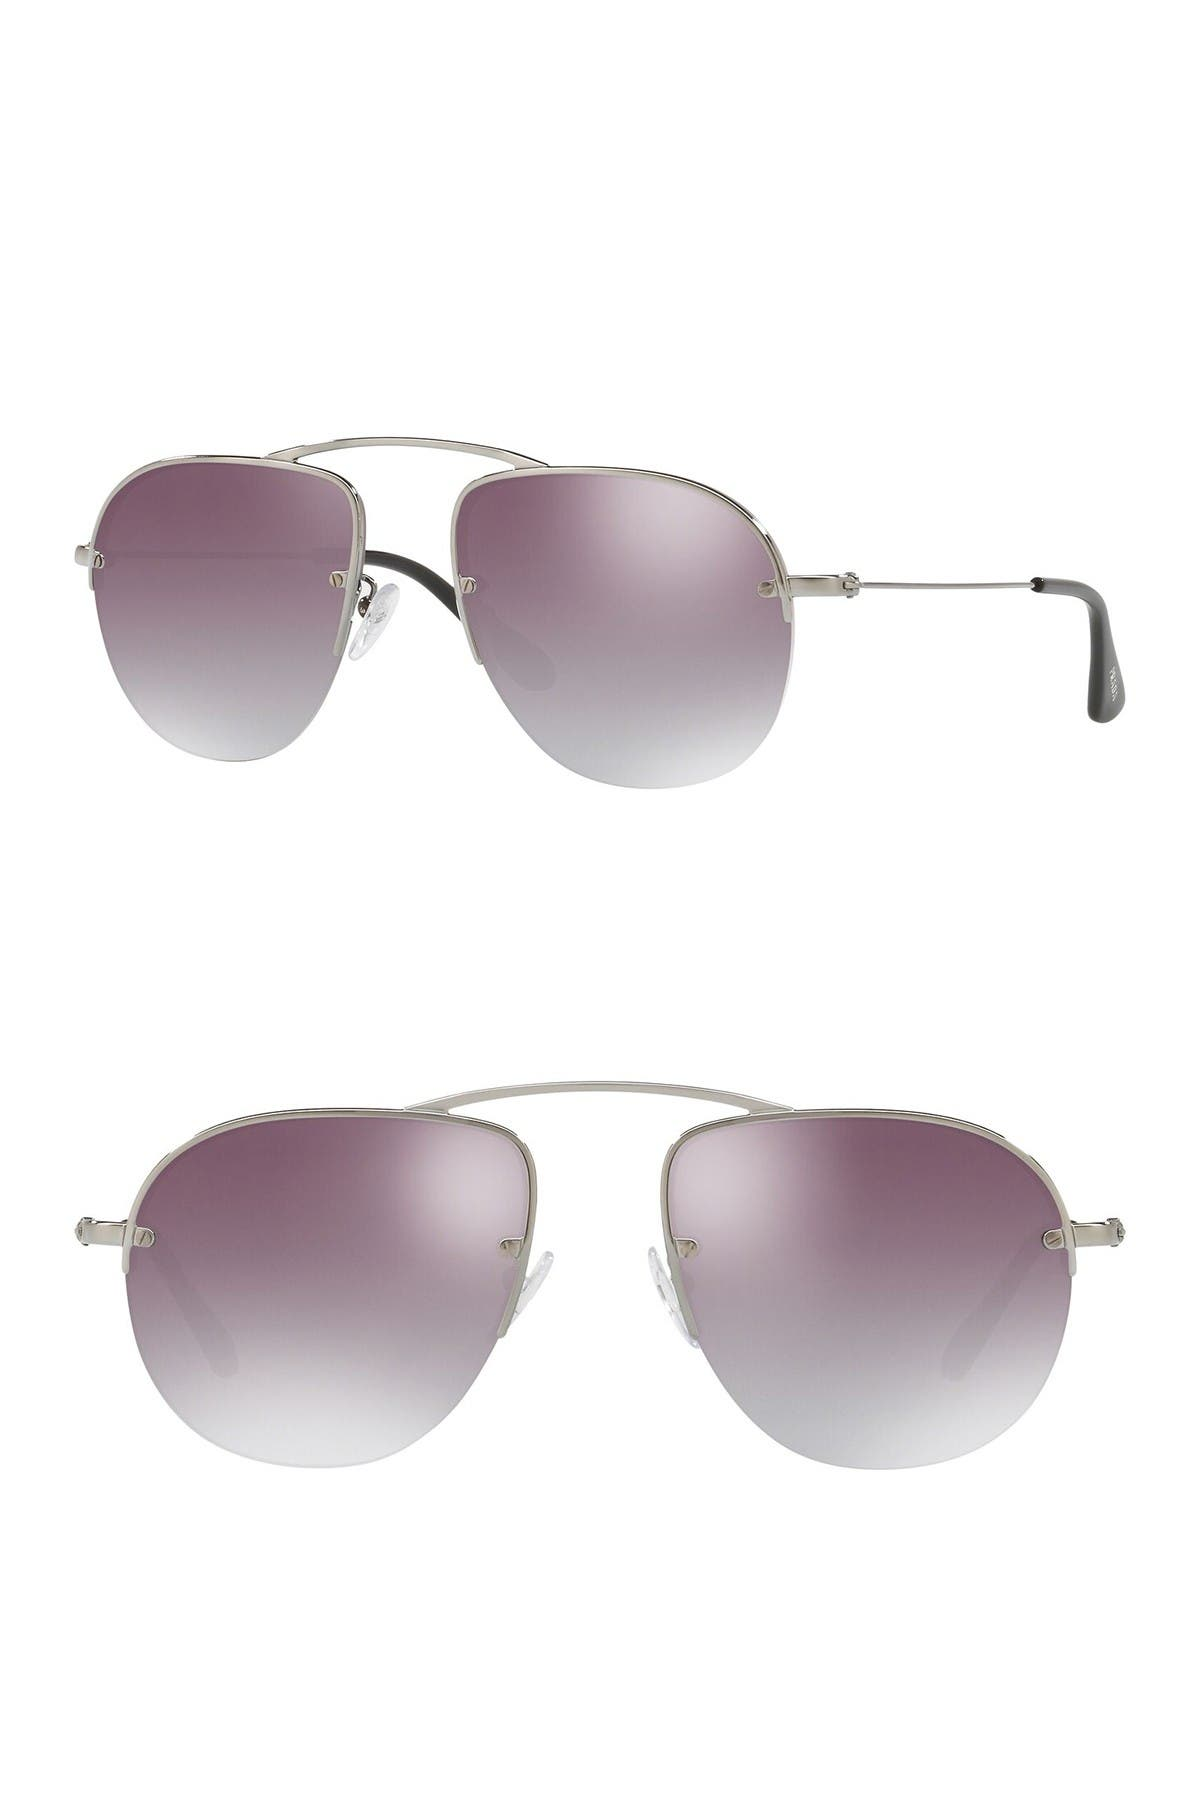 Image of Prada 59mm Pilot Sunglasses